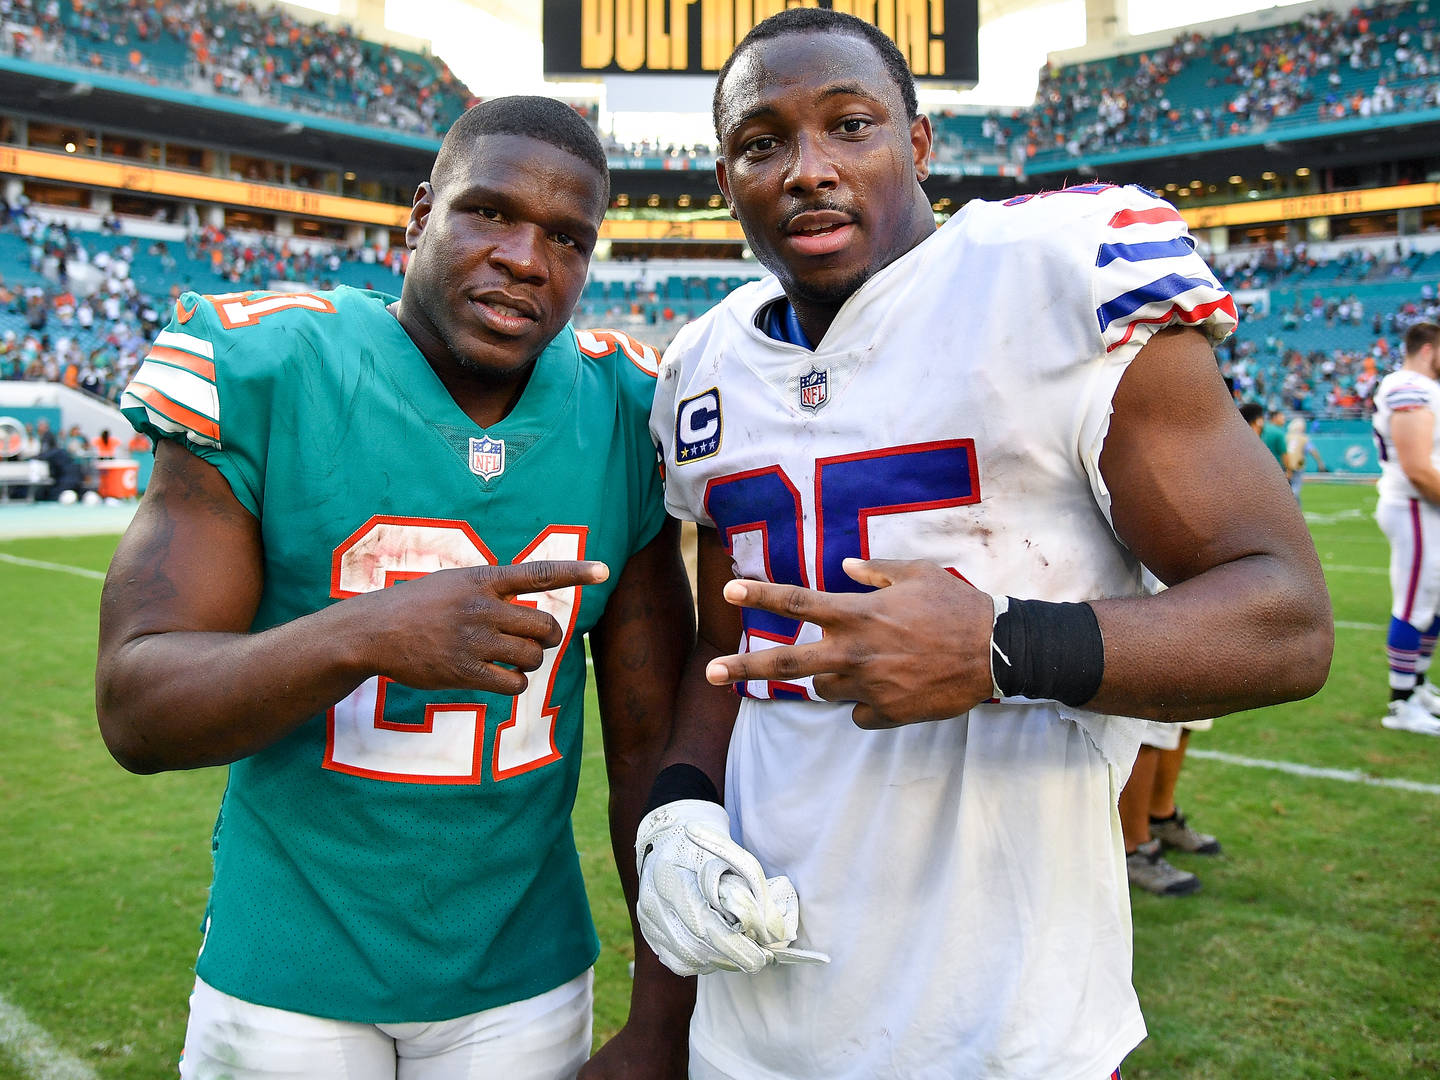 LeSean McCoy planning to sign with a team soon